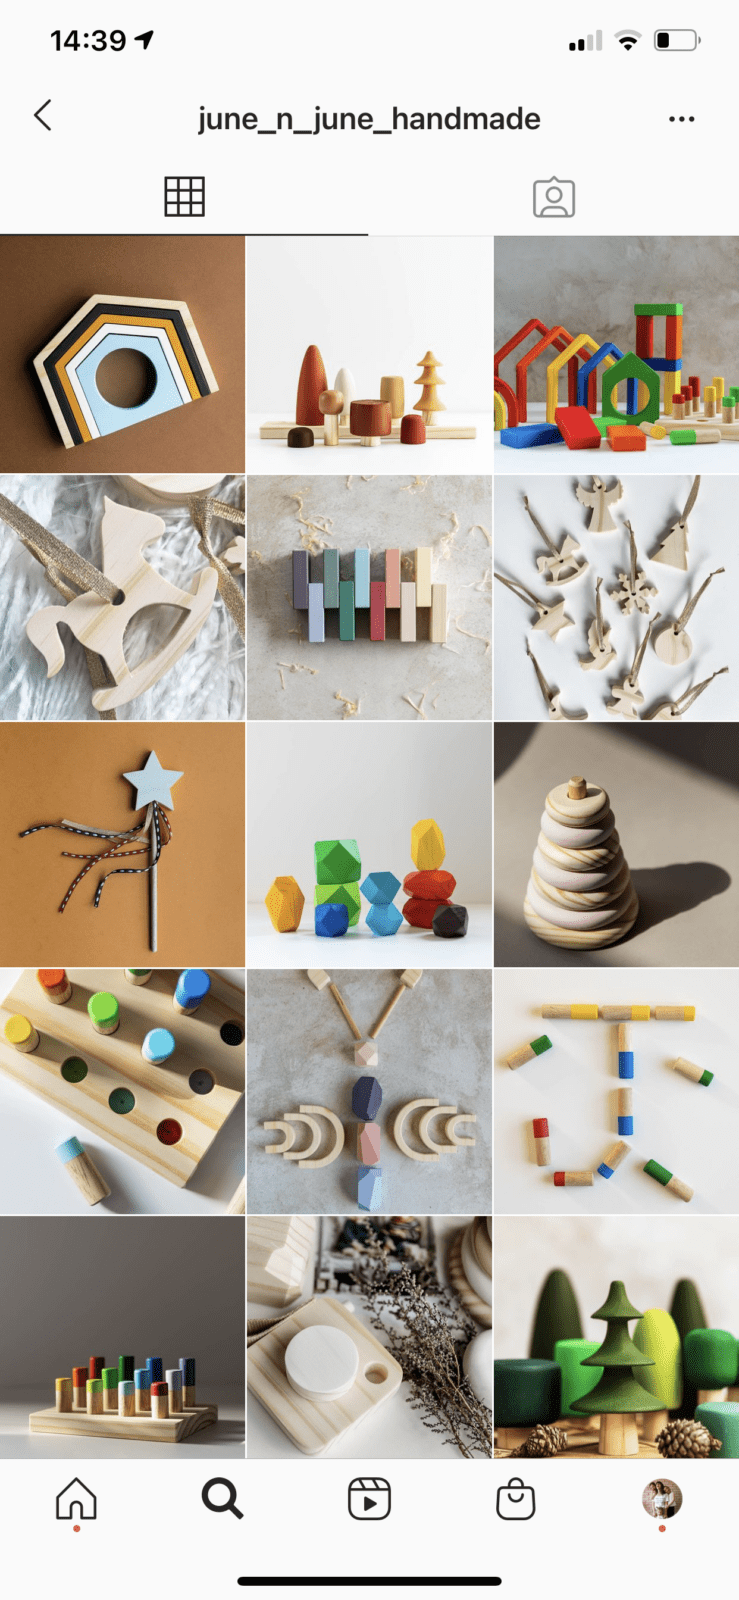 June N June Wooden Toys Made In South Africa